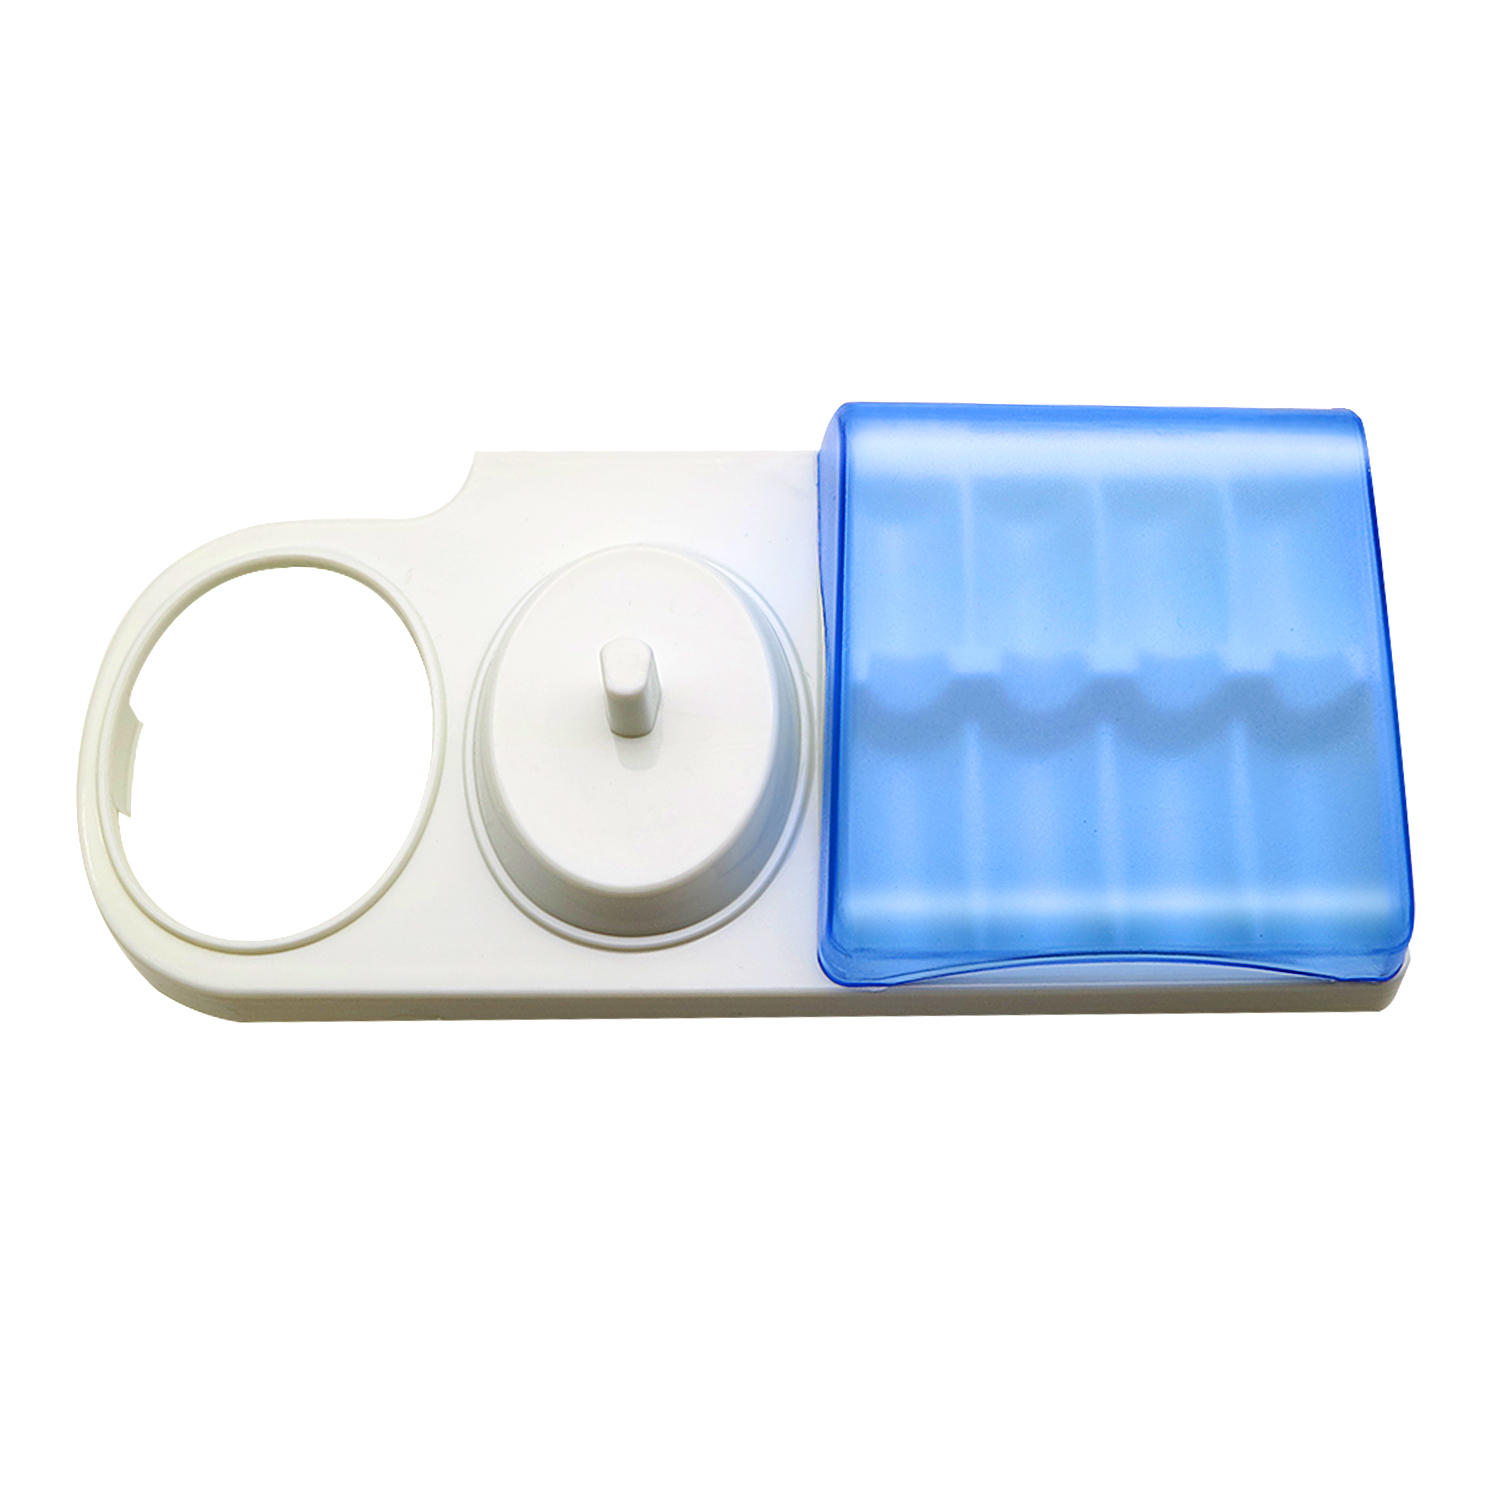 New Portable Brush Head Plastic Support Holder For Oral-B Electric Toothbrush Stand D12 D20 D17 D18 D29 D34 Pro 1000 600 690 700